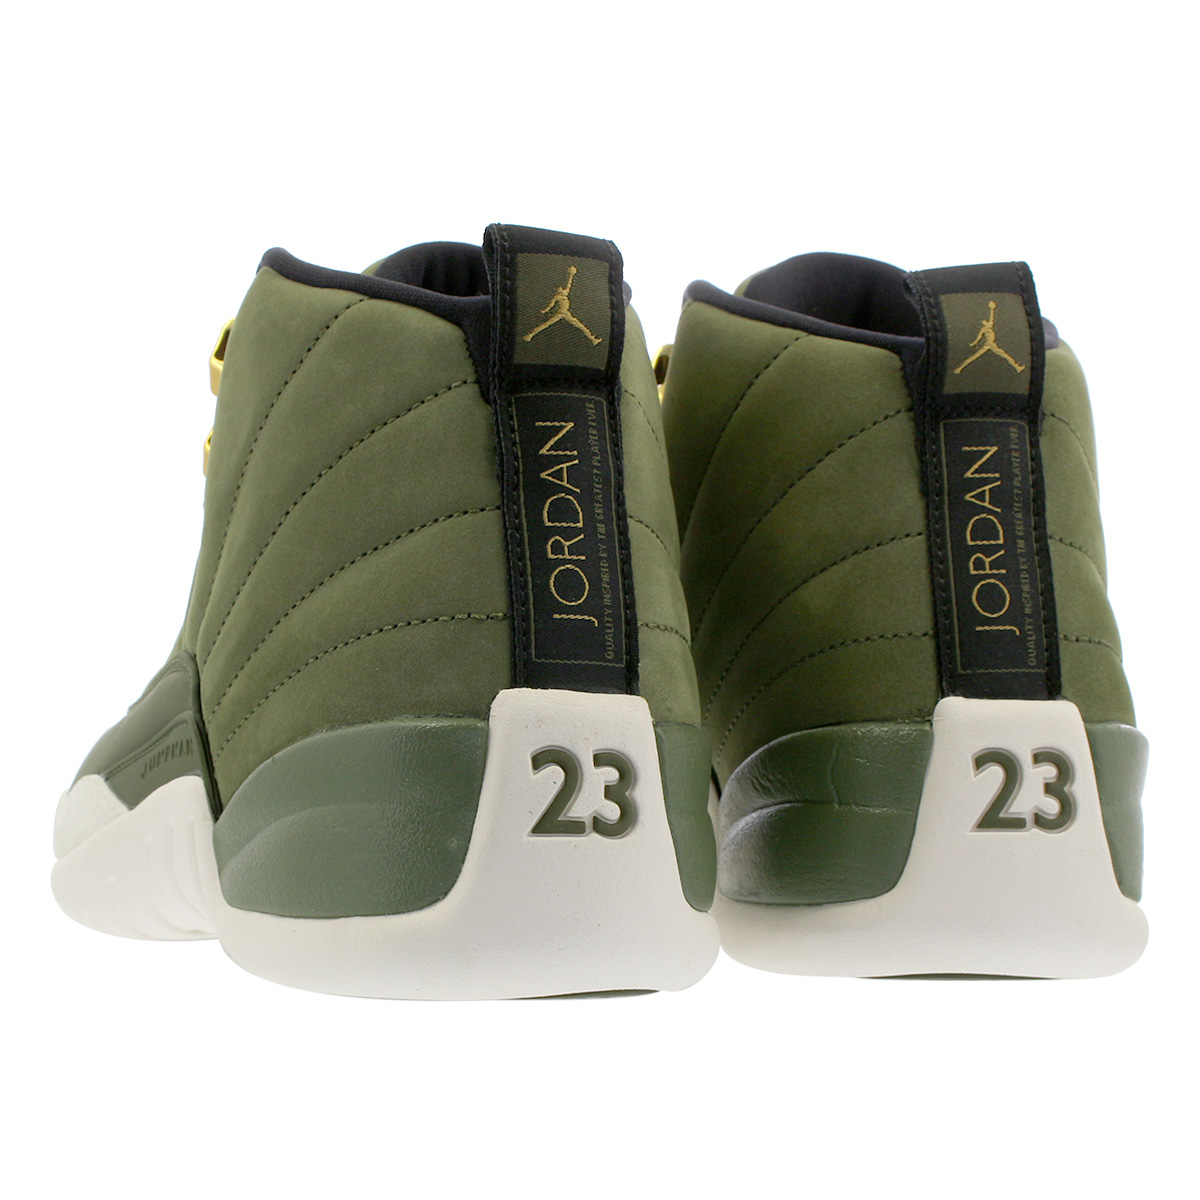 reputable site ff896 5d6df NIKE AIR JORDAN 12 RETRO Nike Air Jordan 12 nostalgic OLIVE CANVAS/METALLIC  GOLD/BLACK/SAIL 130,690-301